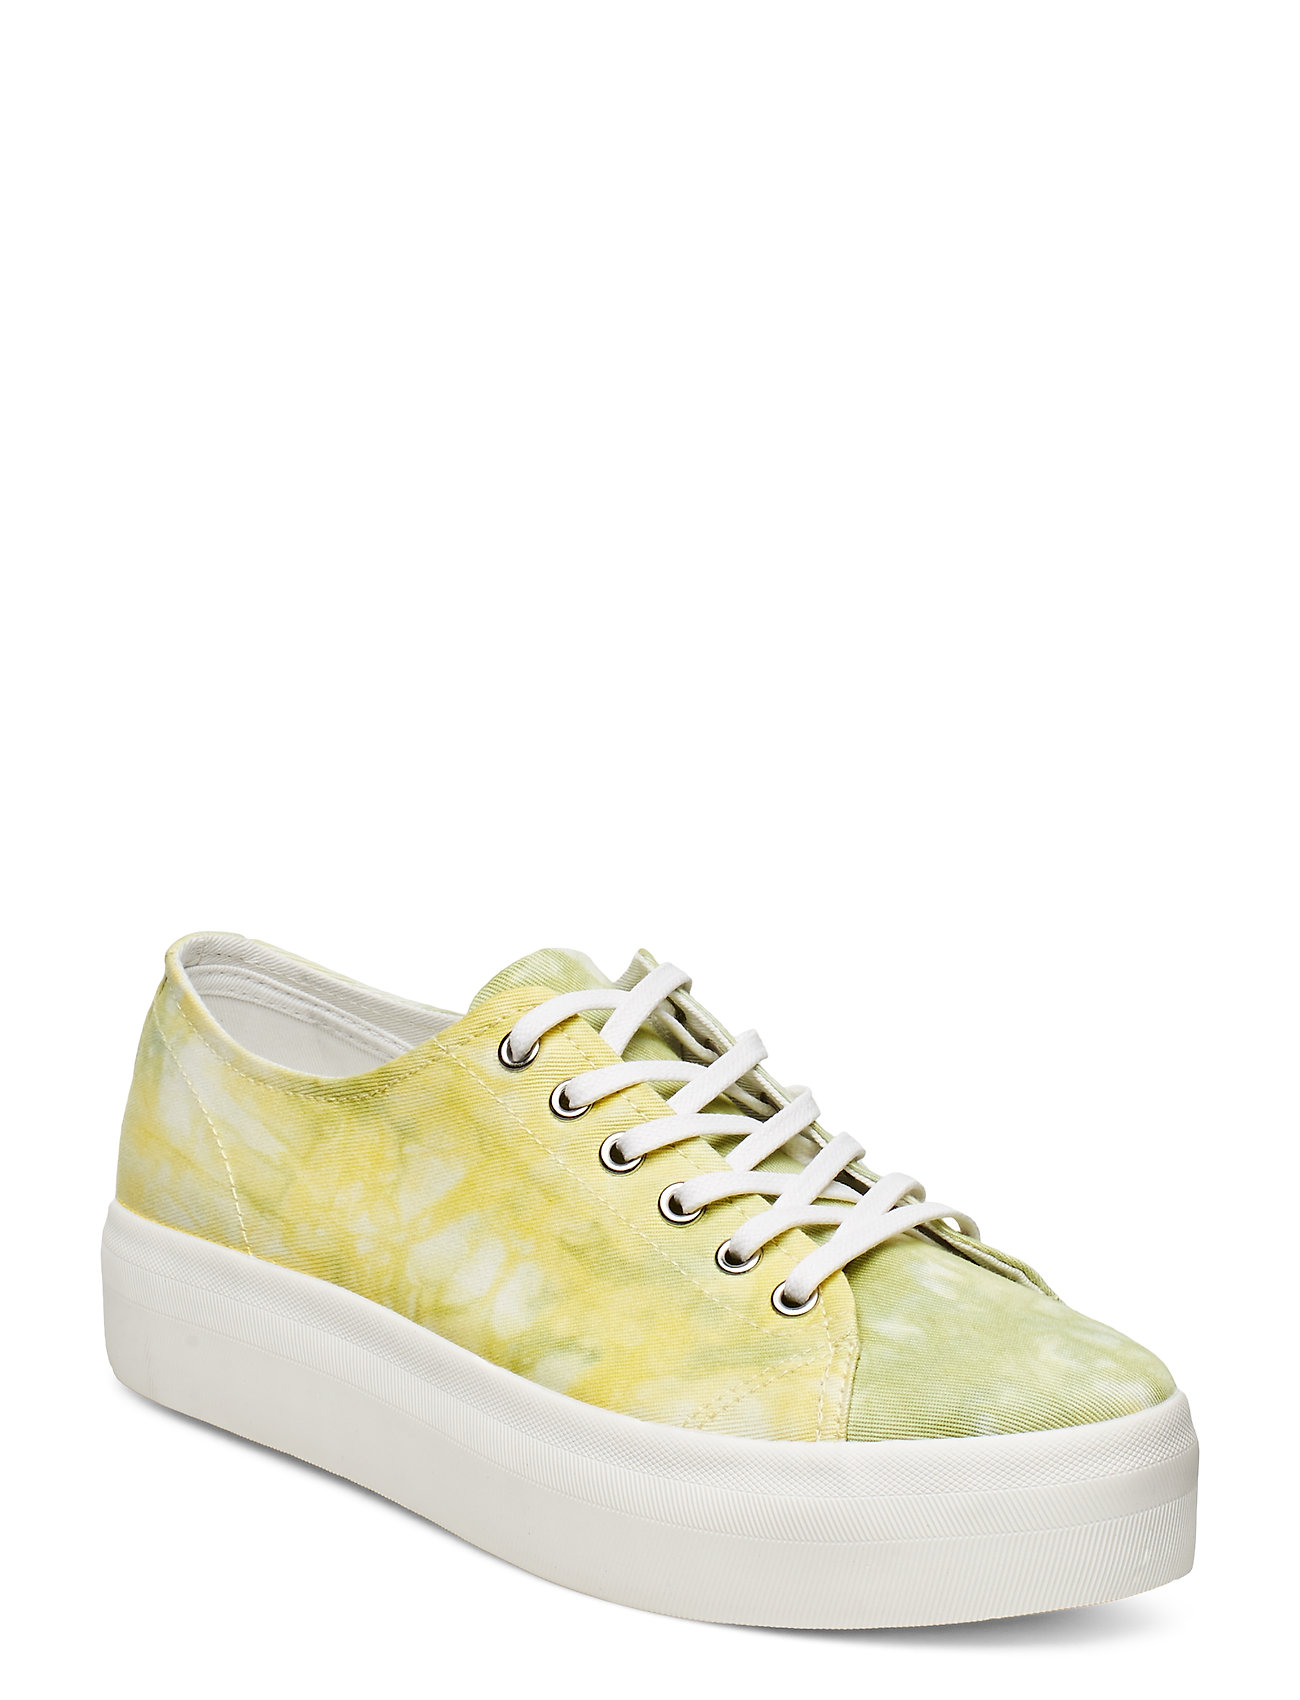 Image of Peggy Low-top Sneakers Gul VAGABOND (3374002539)